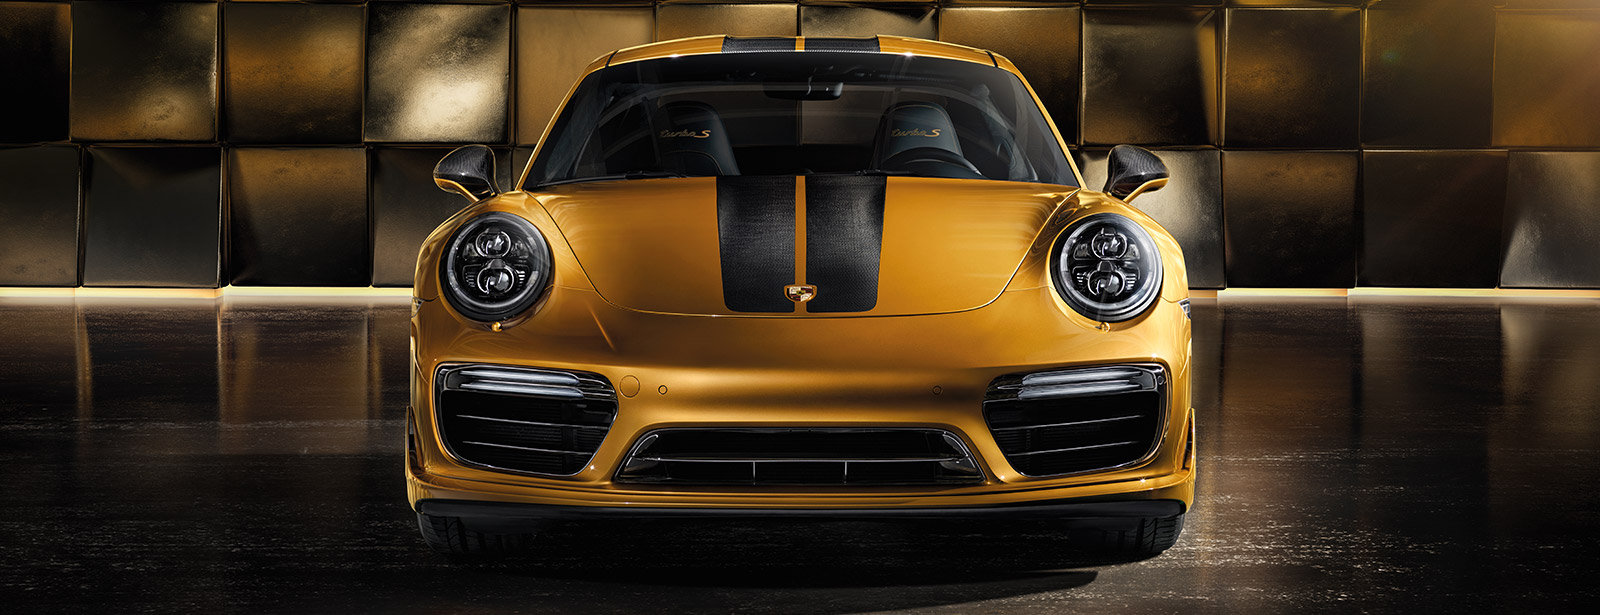 Porsche 911 Turbo S Exclusive Series, el más potente de la historia